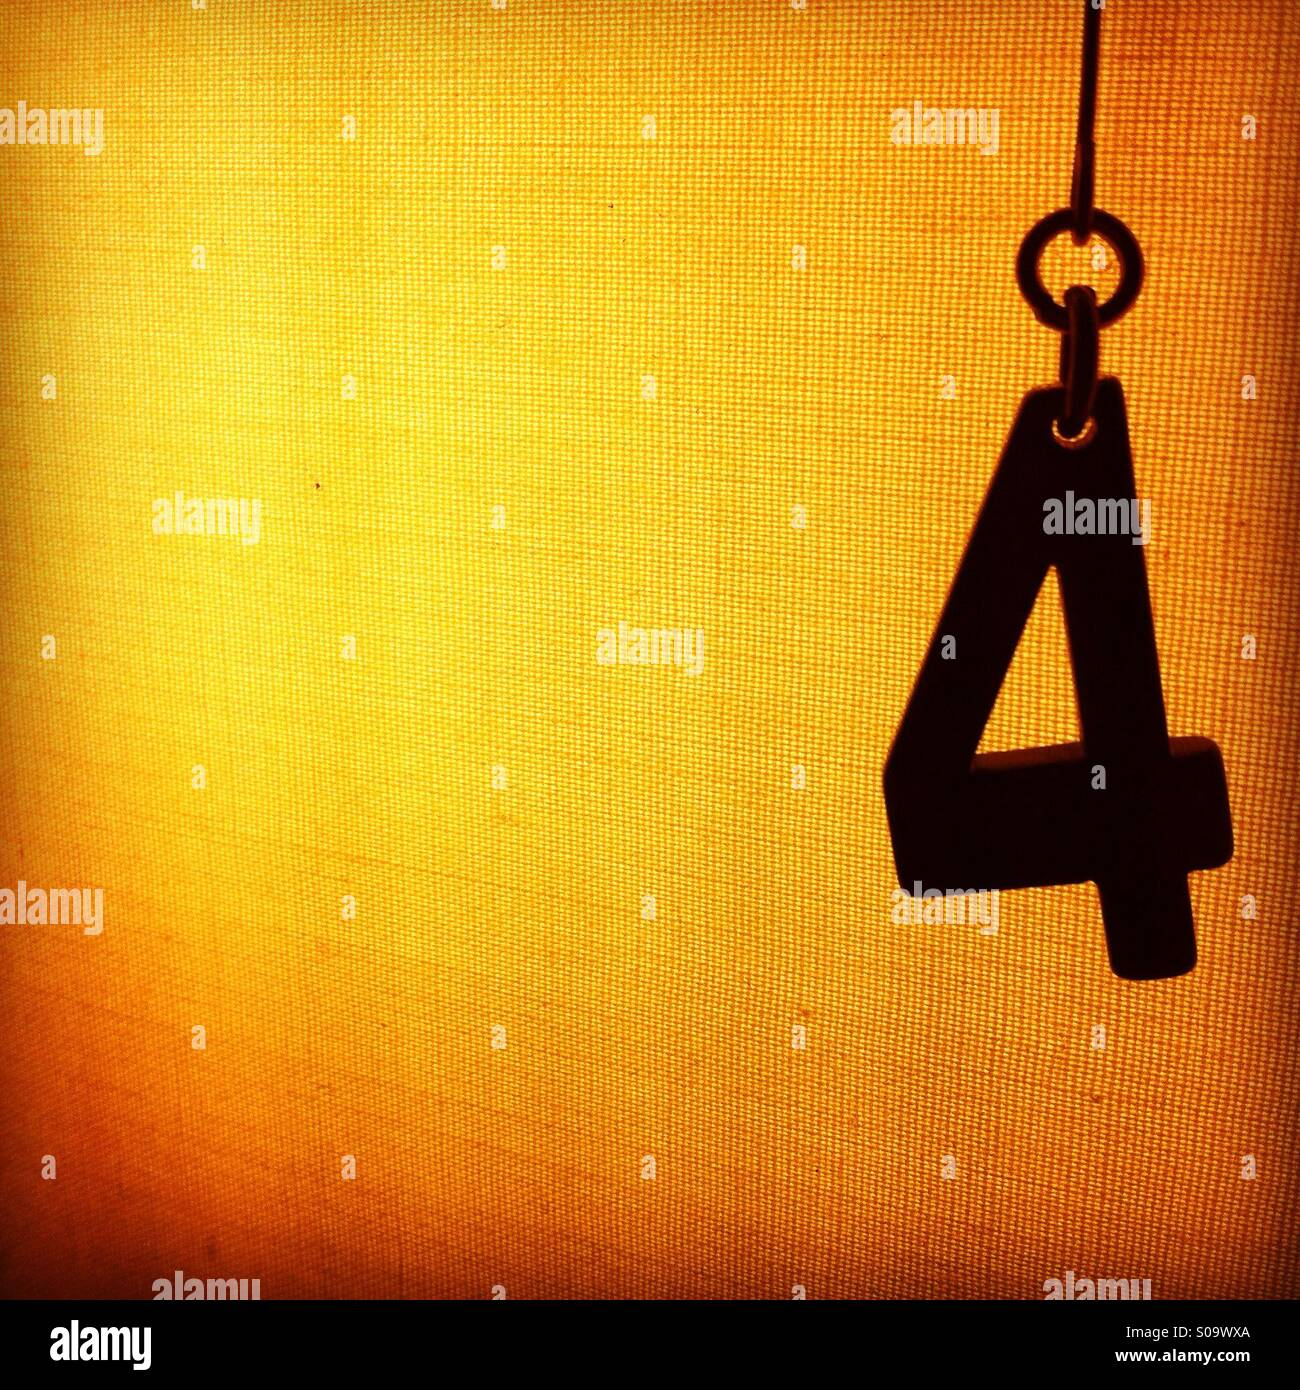 Silhouette of a number four hanging in front of an illuminated textured background - Stock Image